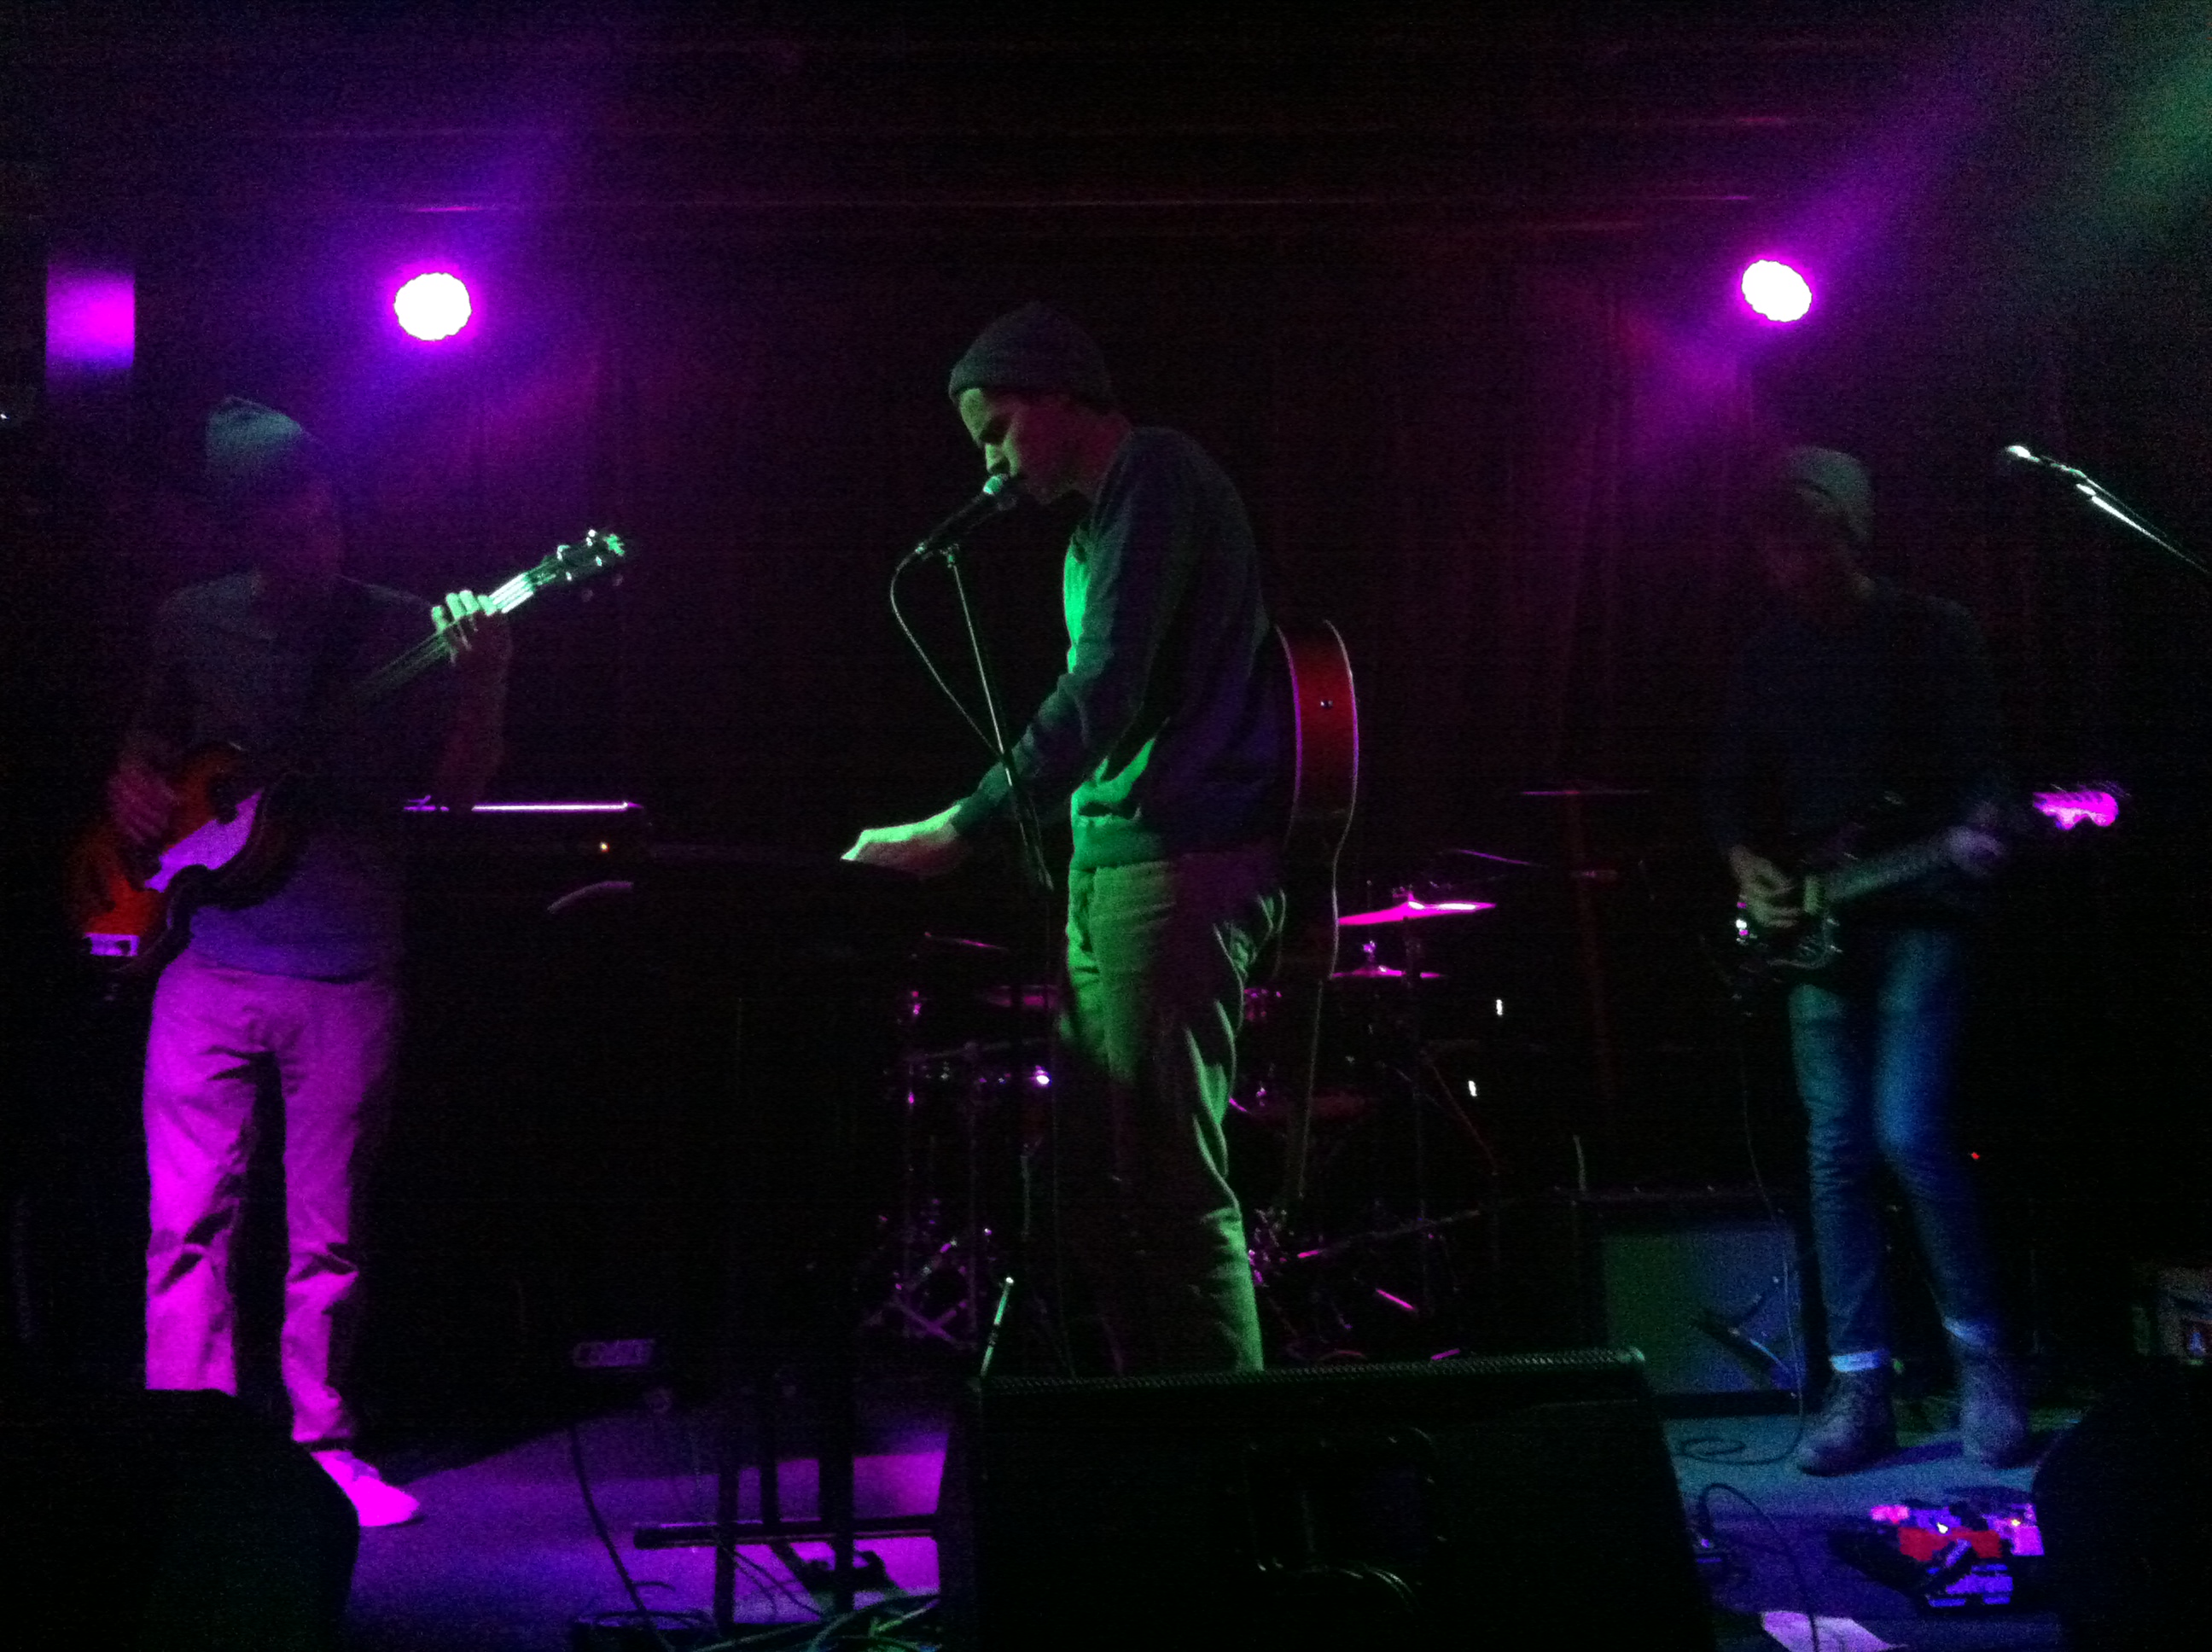 Son & Thief play at the Caledonia on 1/15